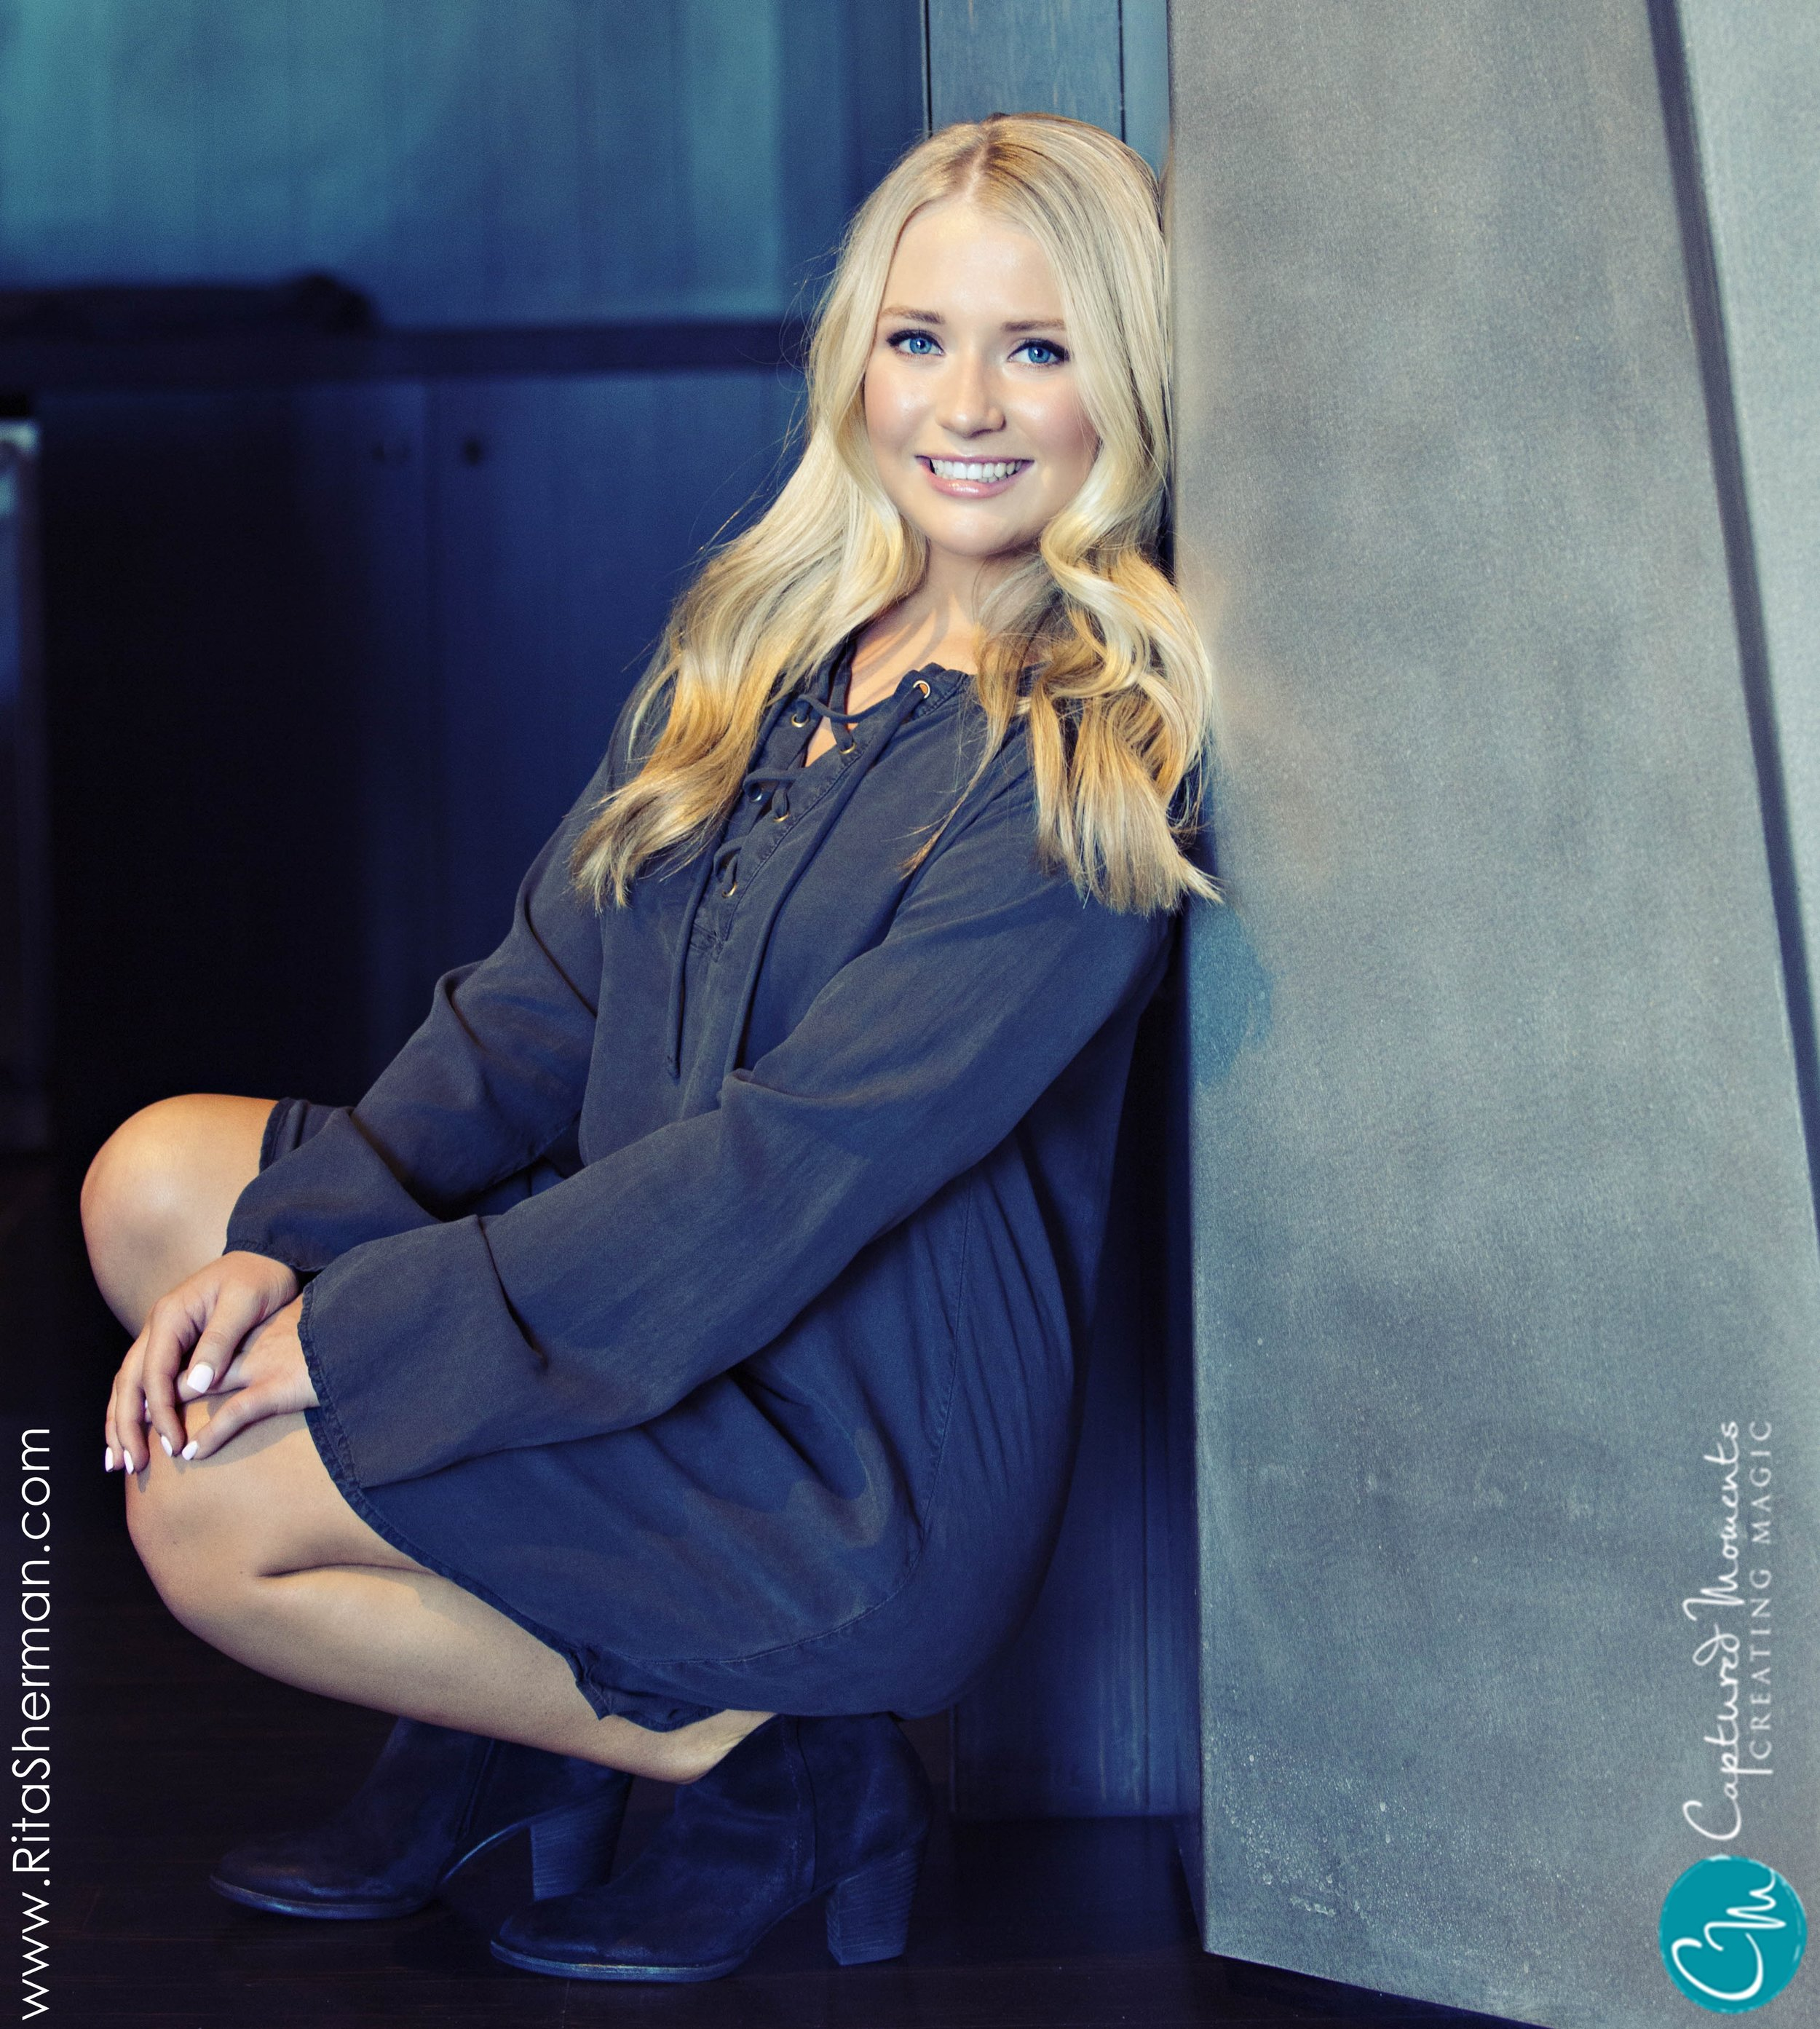 Scottsdale Portrait PhotographerCaptured-Moments640.jpg